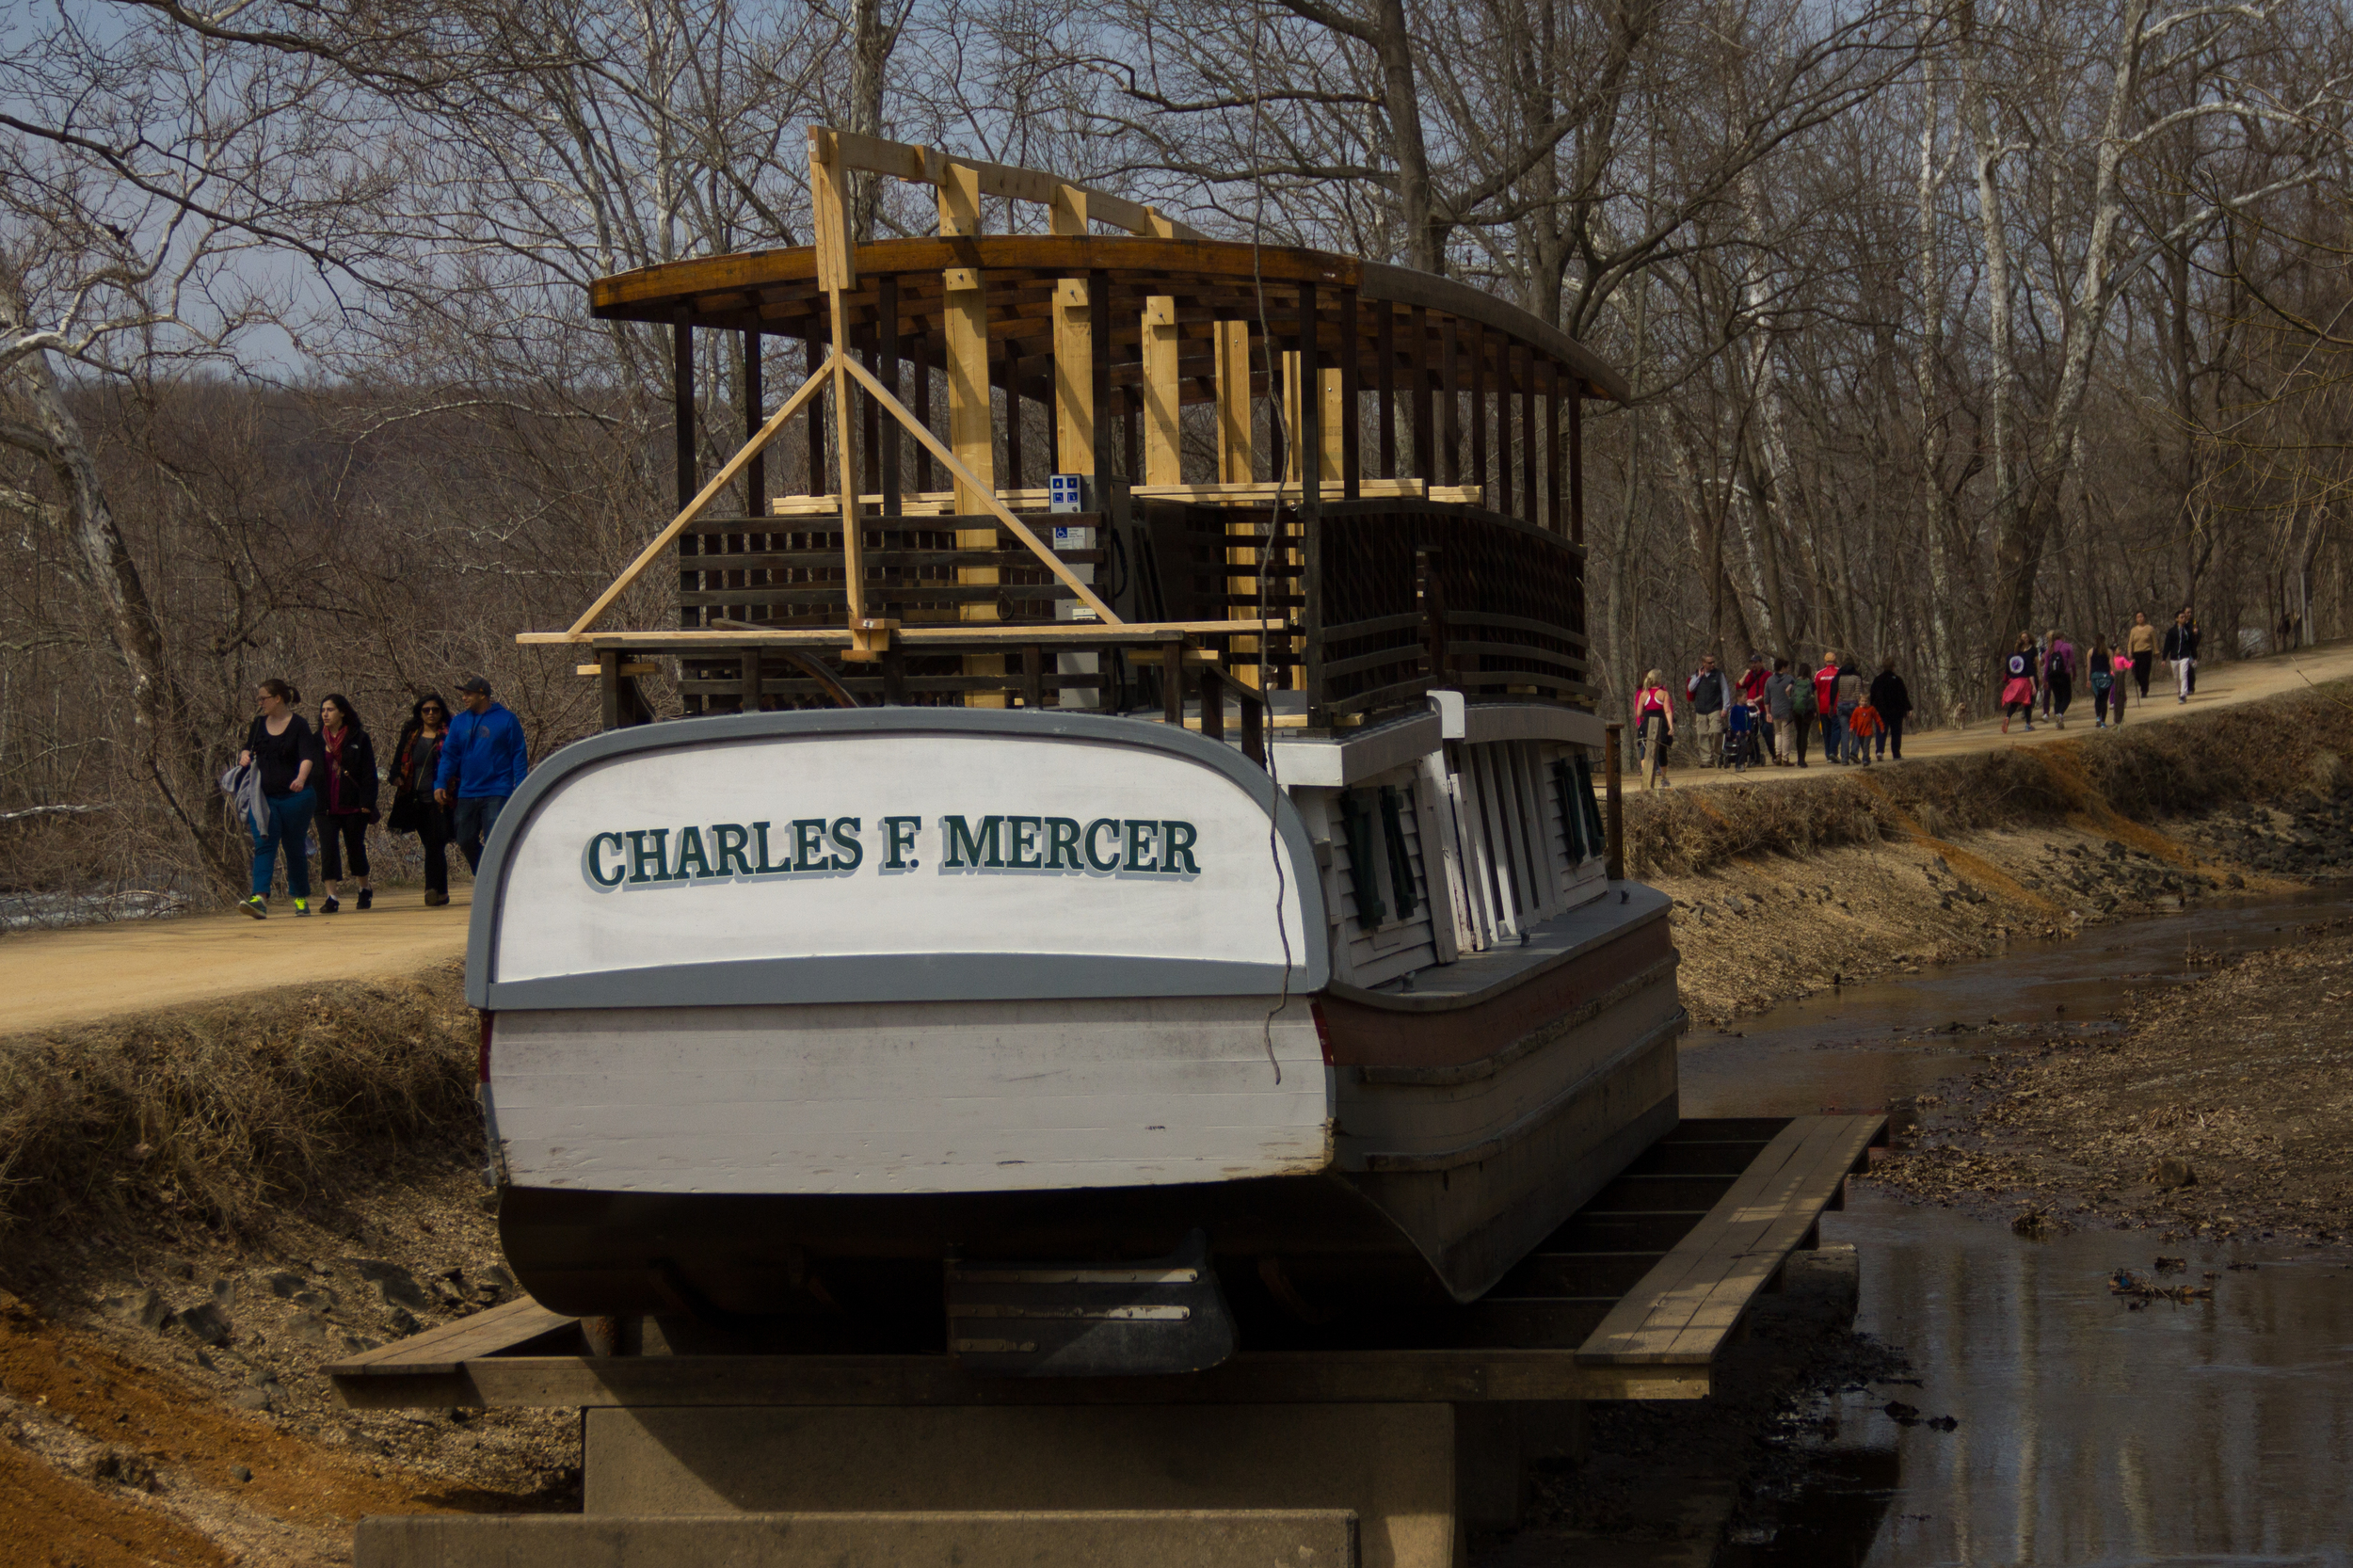 Charles F. Mercer, old canal boat